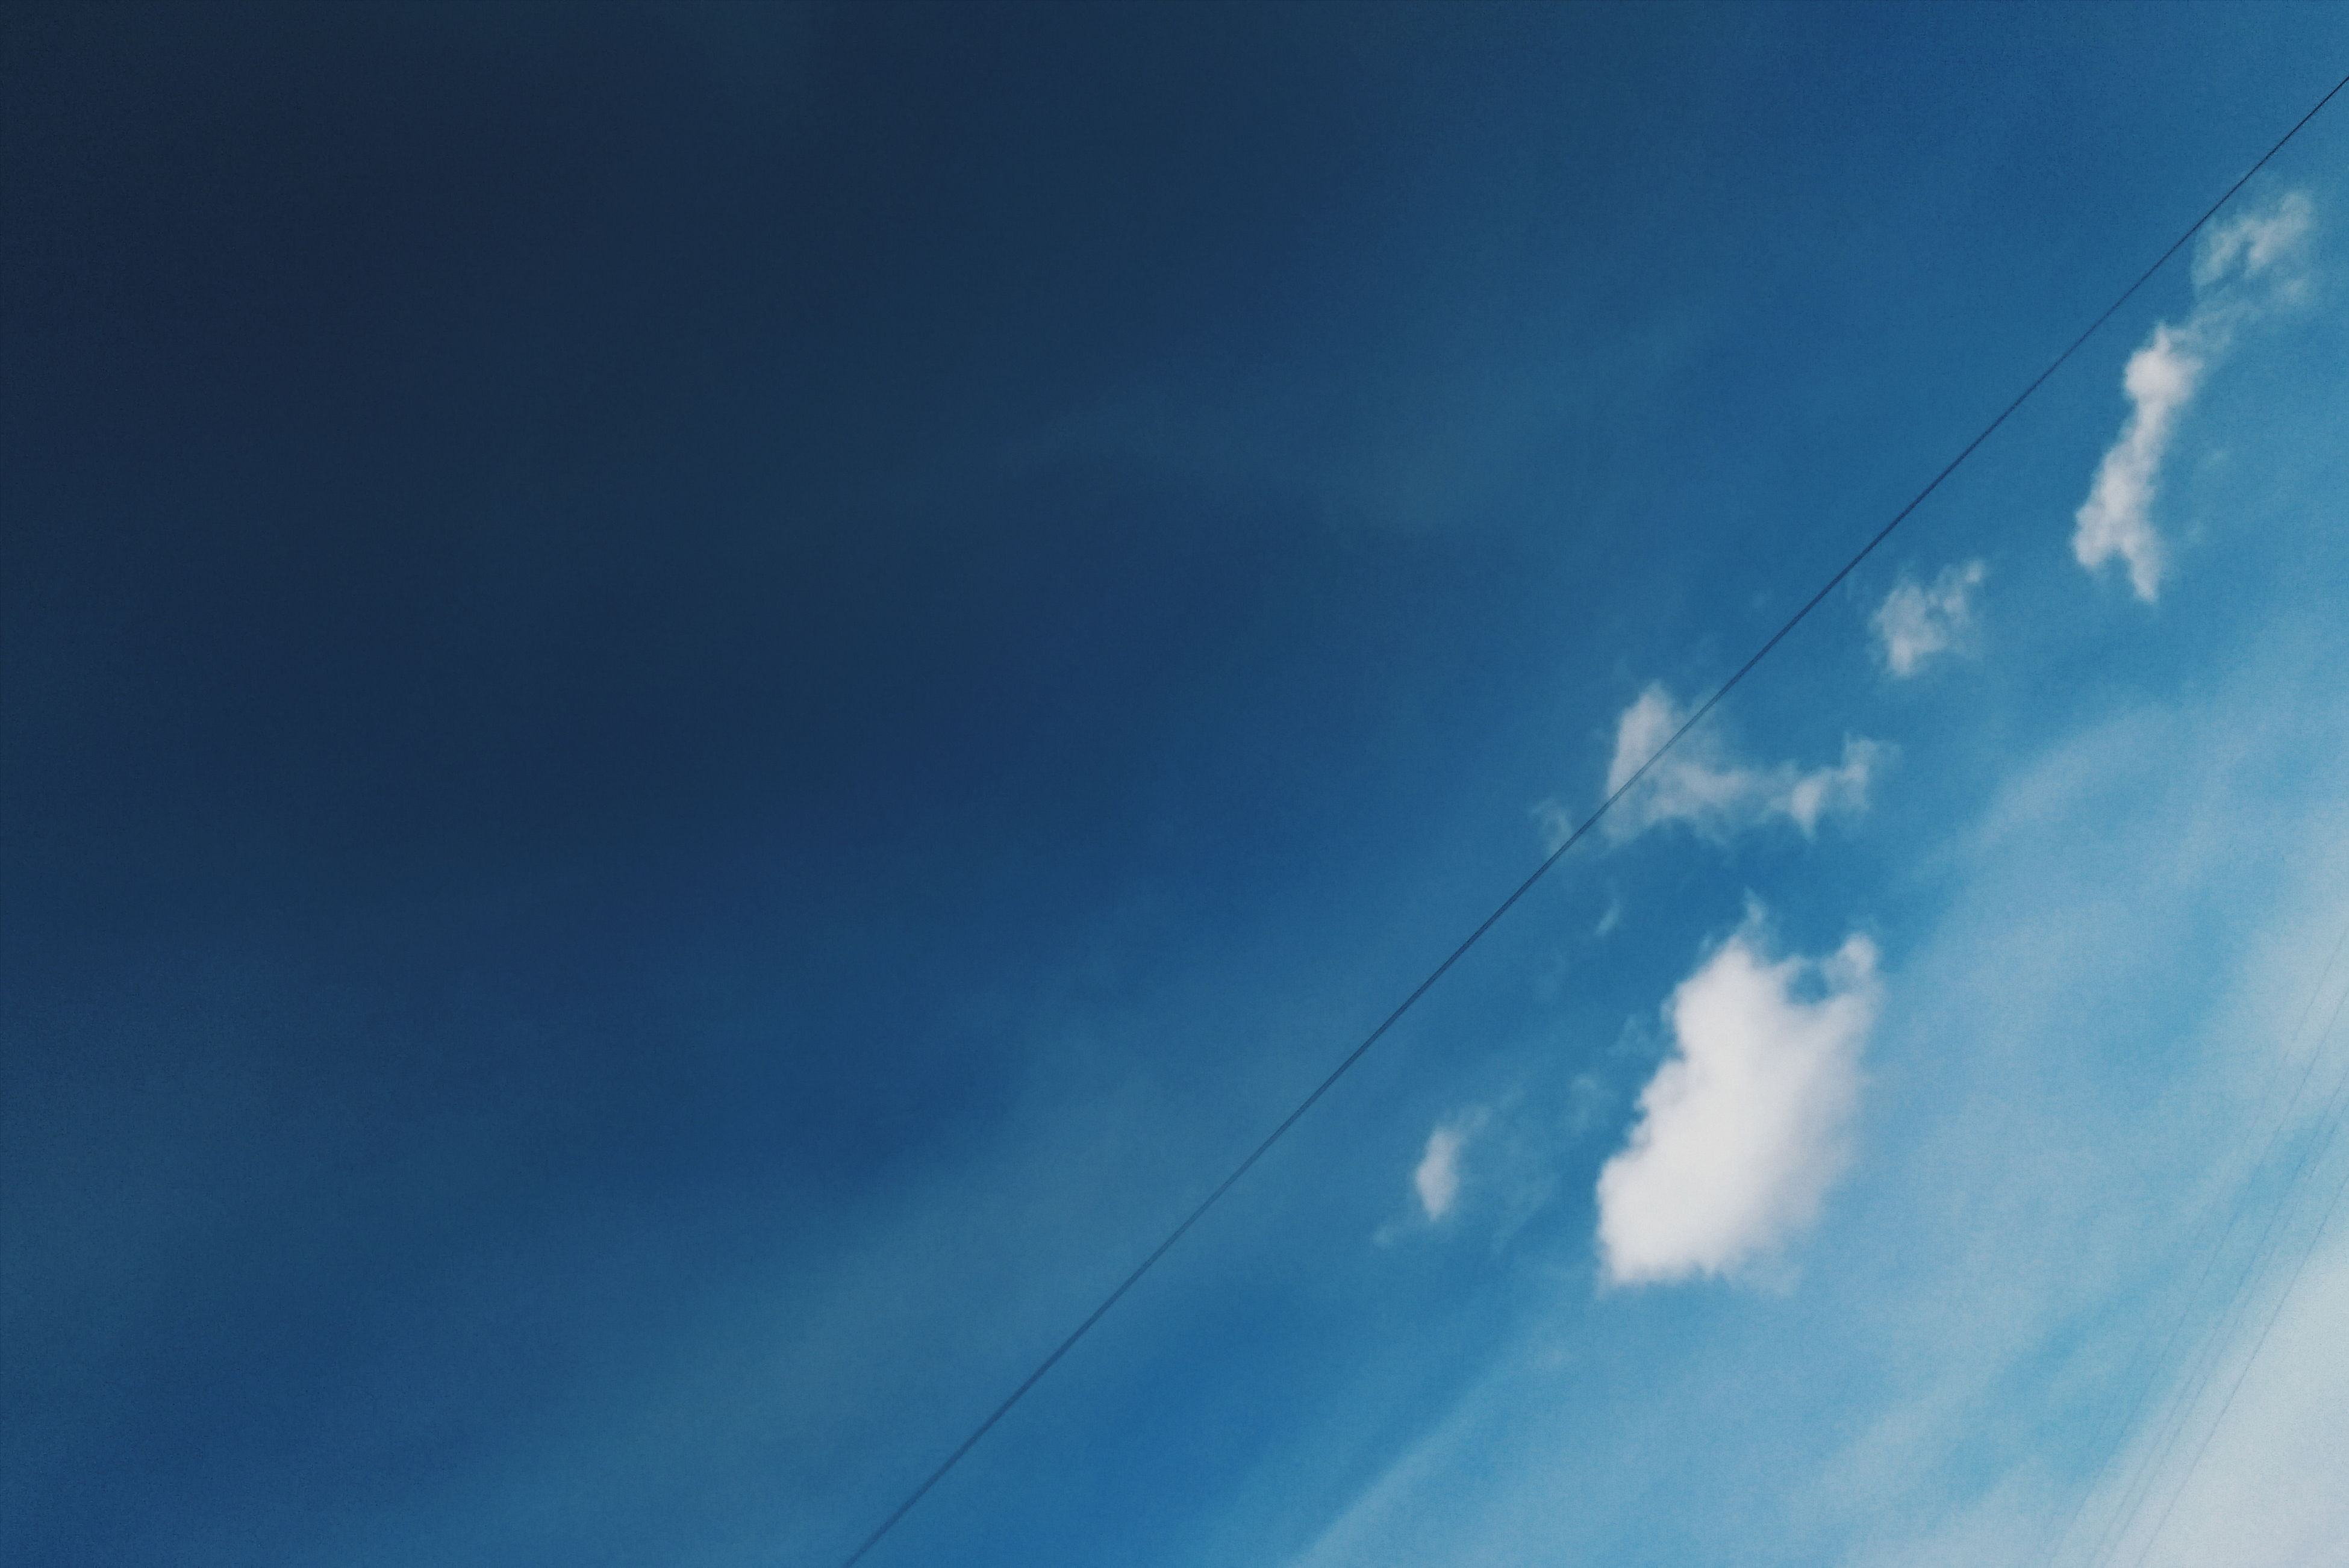 low angle view, blue, sky, power line, cable, cloud - sky, electricity, vapor trail, power supply, nature, cloud, connection, beauty in nature, tranquility, outdoors, no people, day, electricity pylon, scenics, copy space